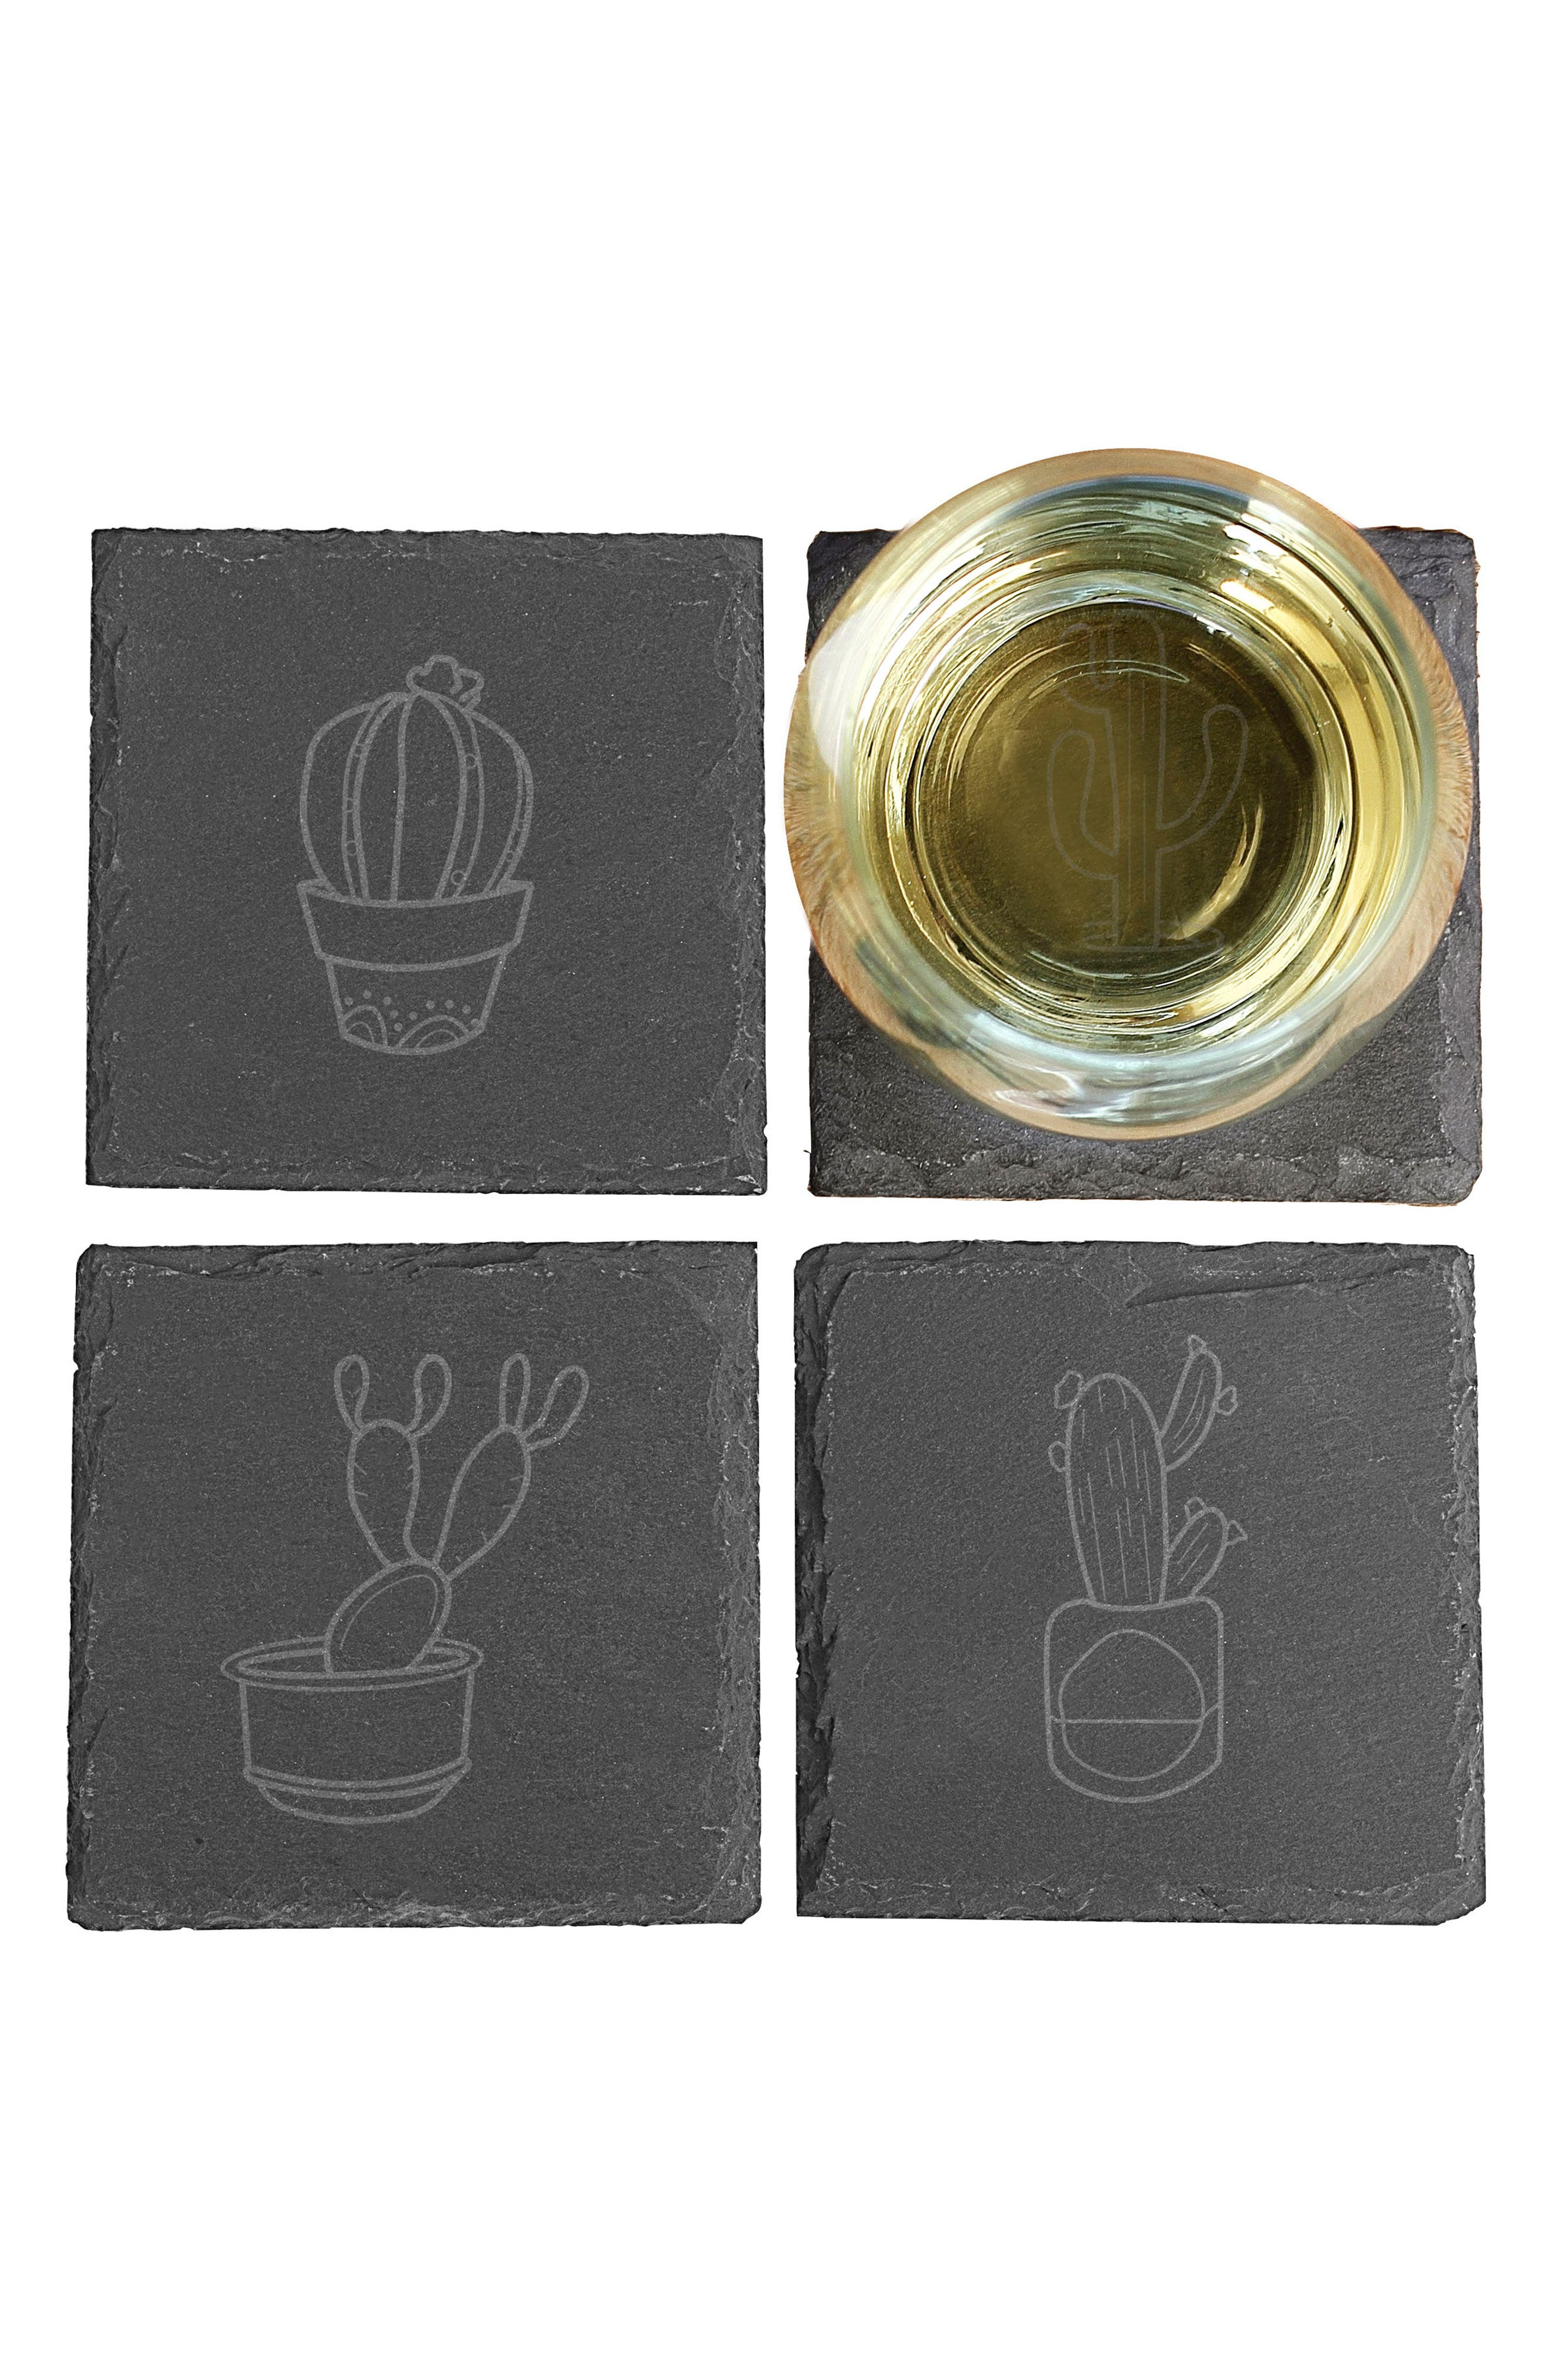 CATHY'S CONCEPTS,                             Cactus Set of 4 Coasters,                             Alternate thumbnail 2, color,                             002